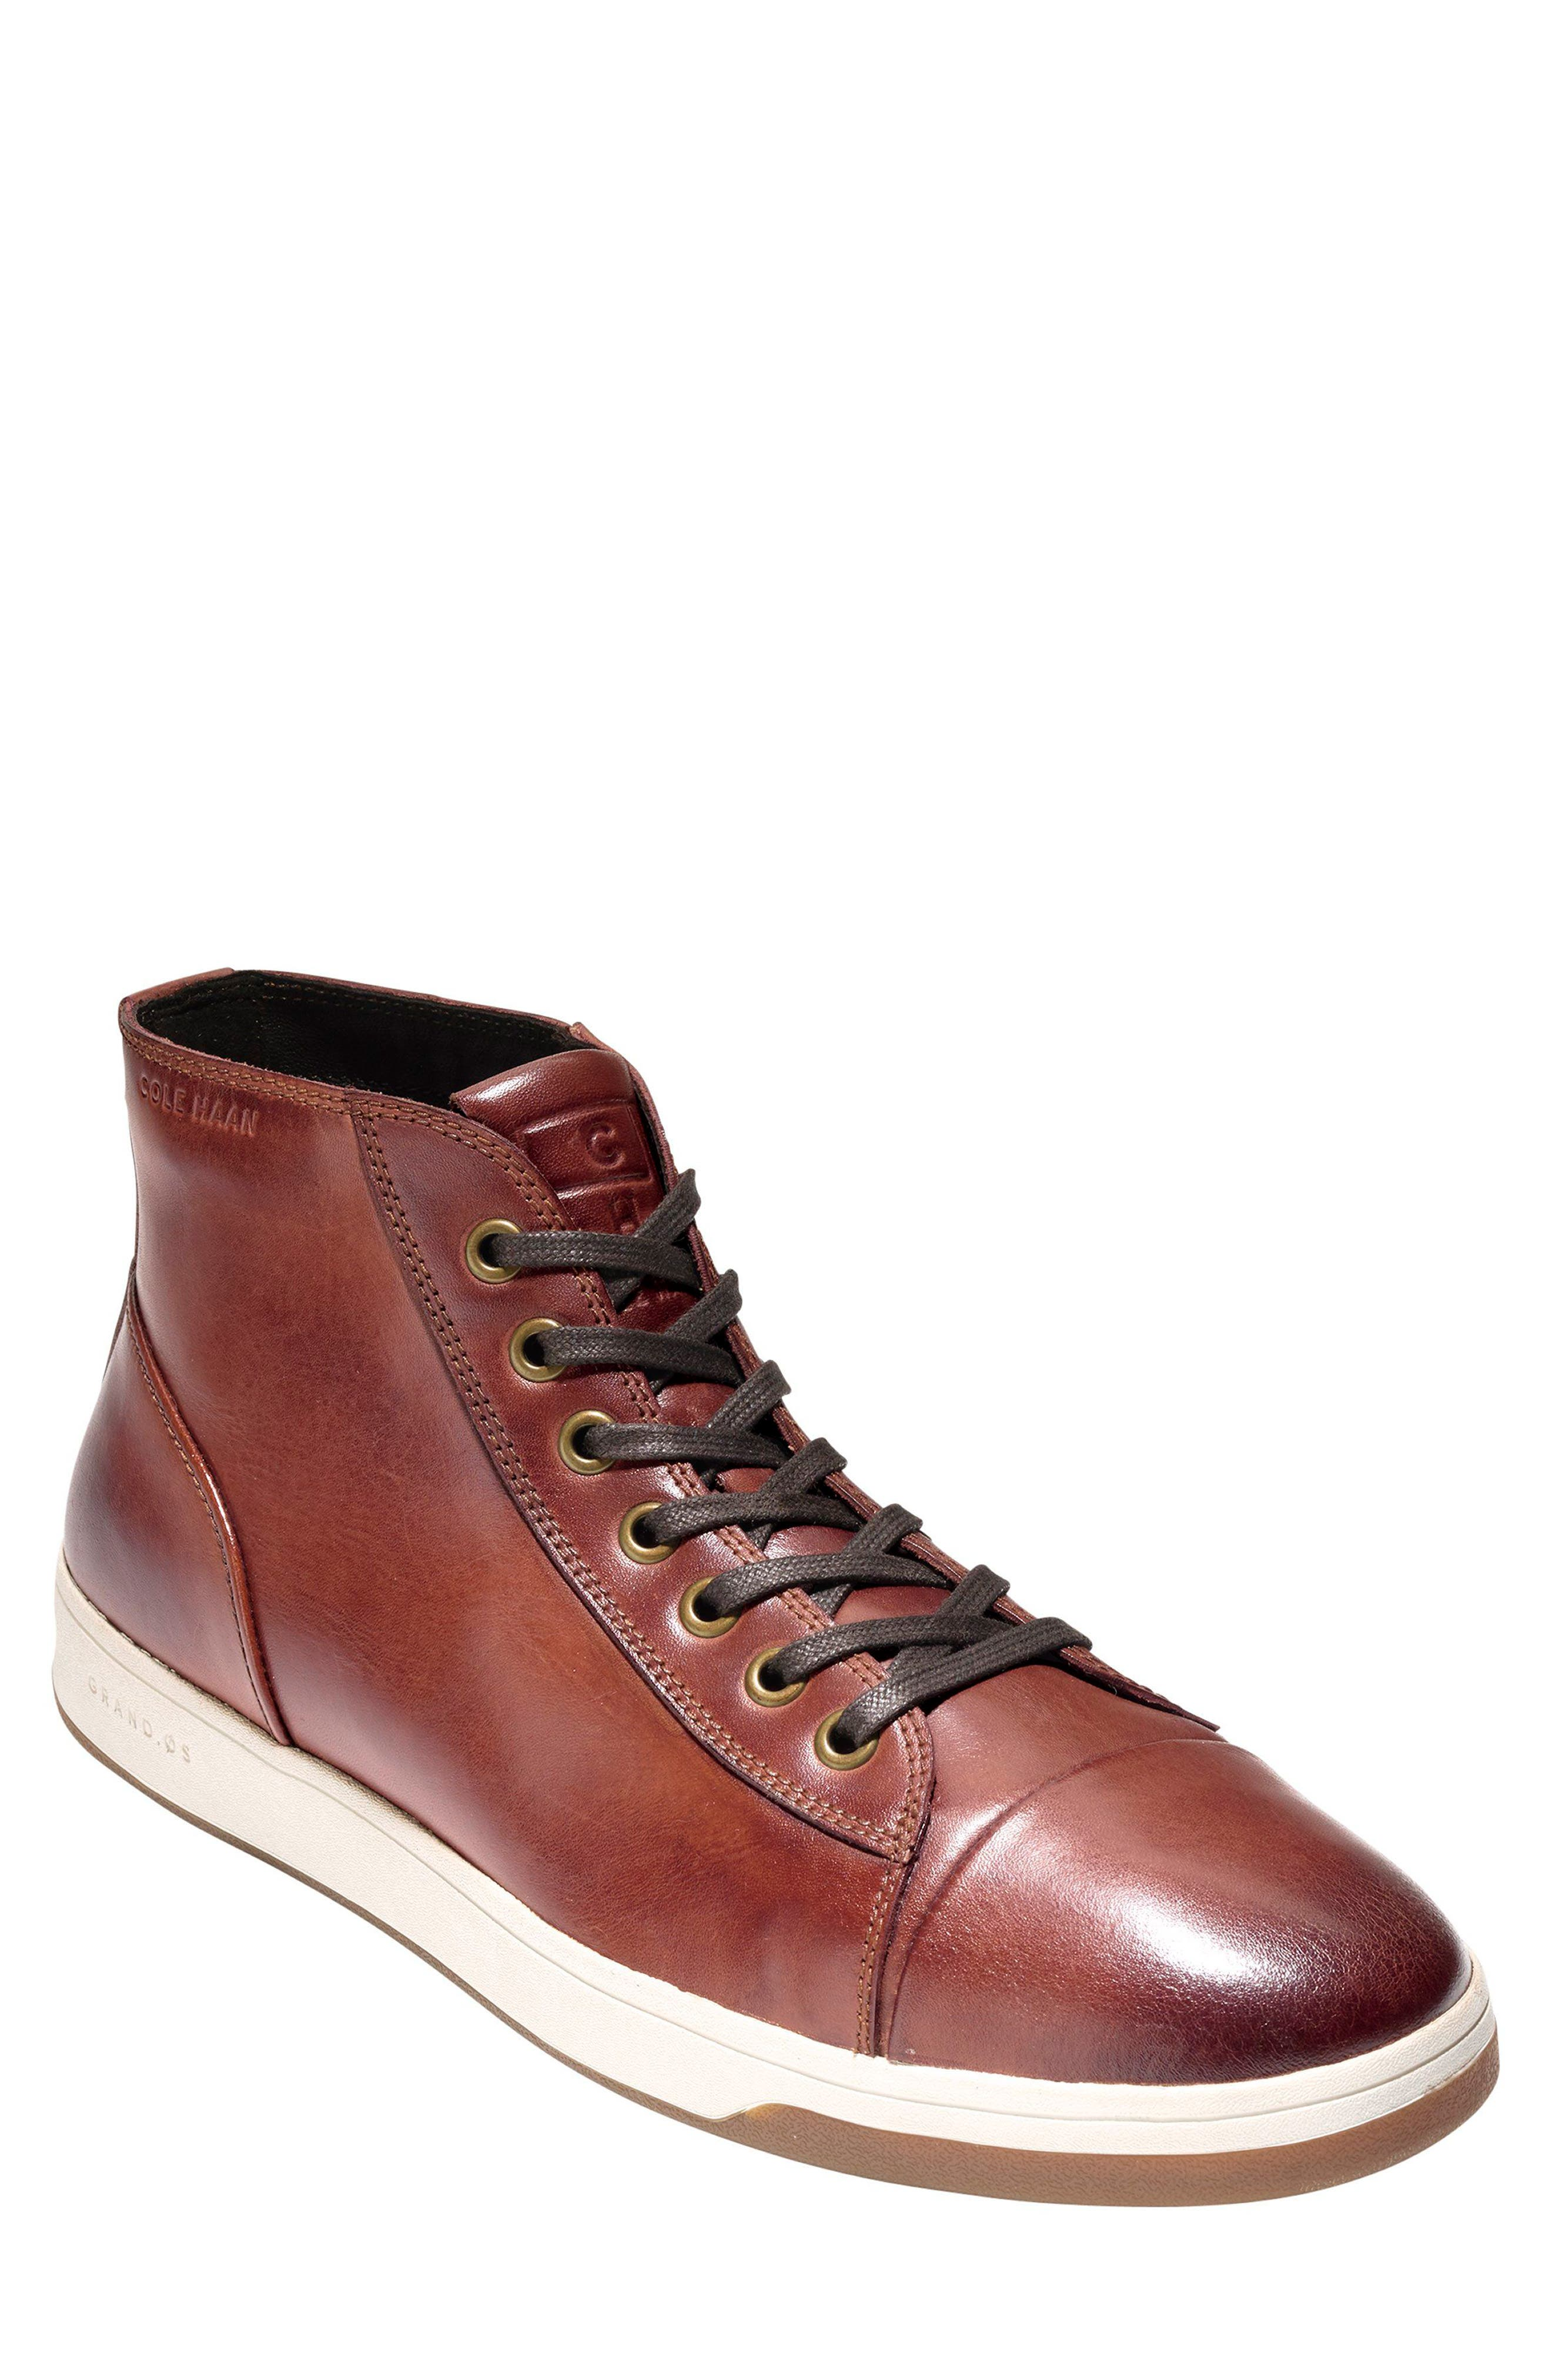 GrandPro High Top Sneaker,                             Main thumbnail 1, color,                             Woodbury Leather